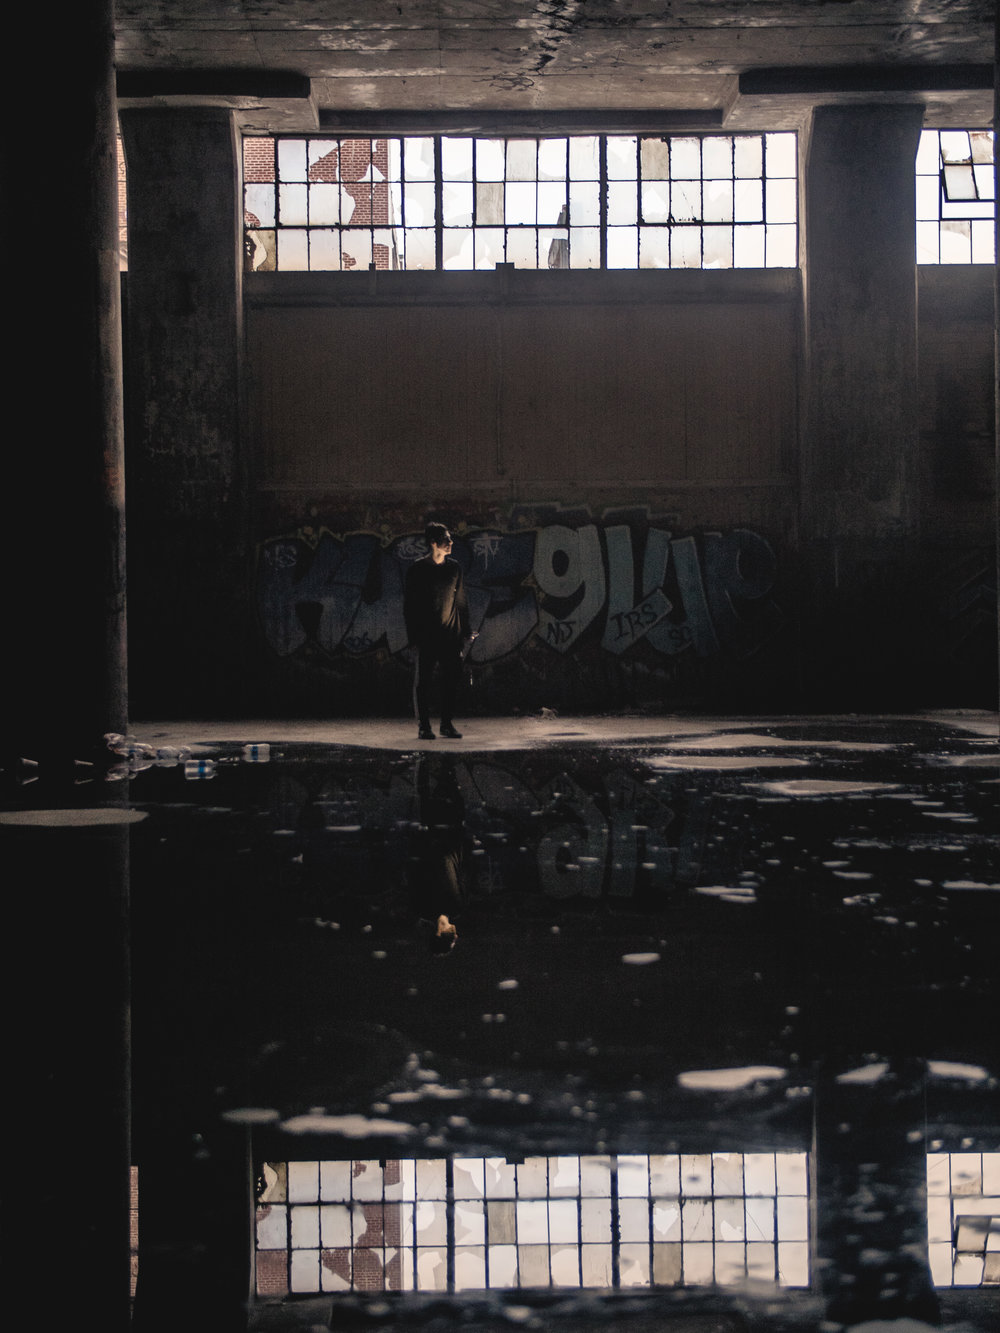 Joe-Rizzo-Parkour-Freerunning-UnknownProject-NYC-New-York-Urbex-Steve-Zavitz-Climbing-Abandoned